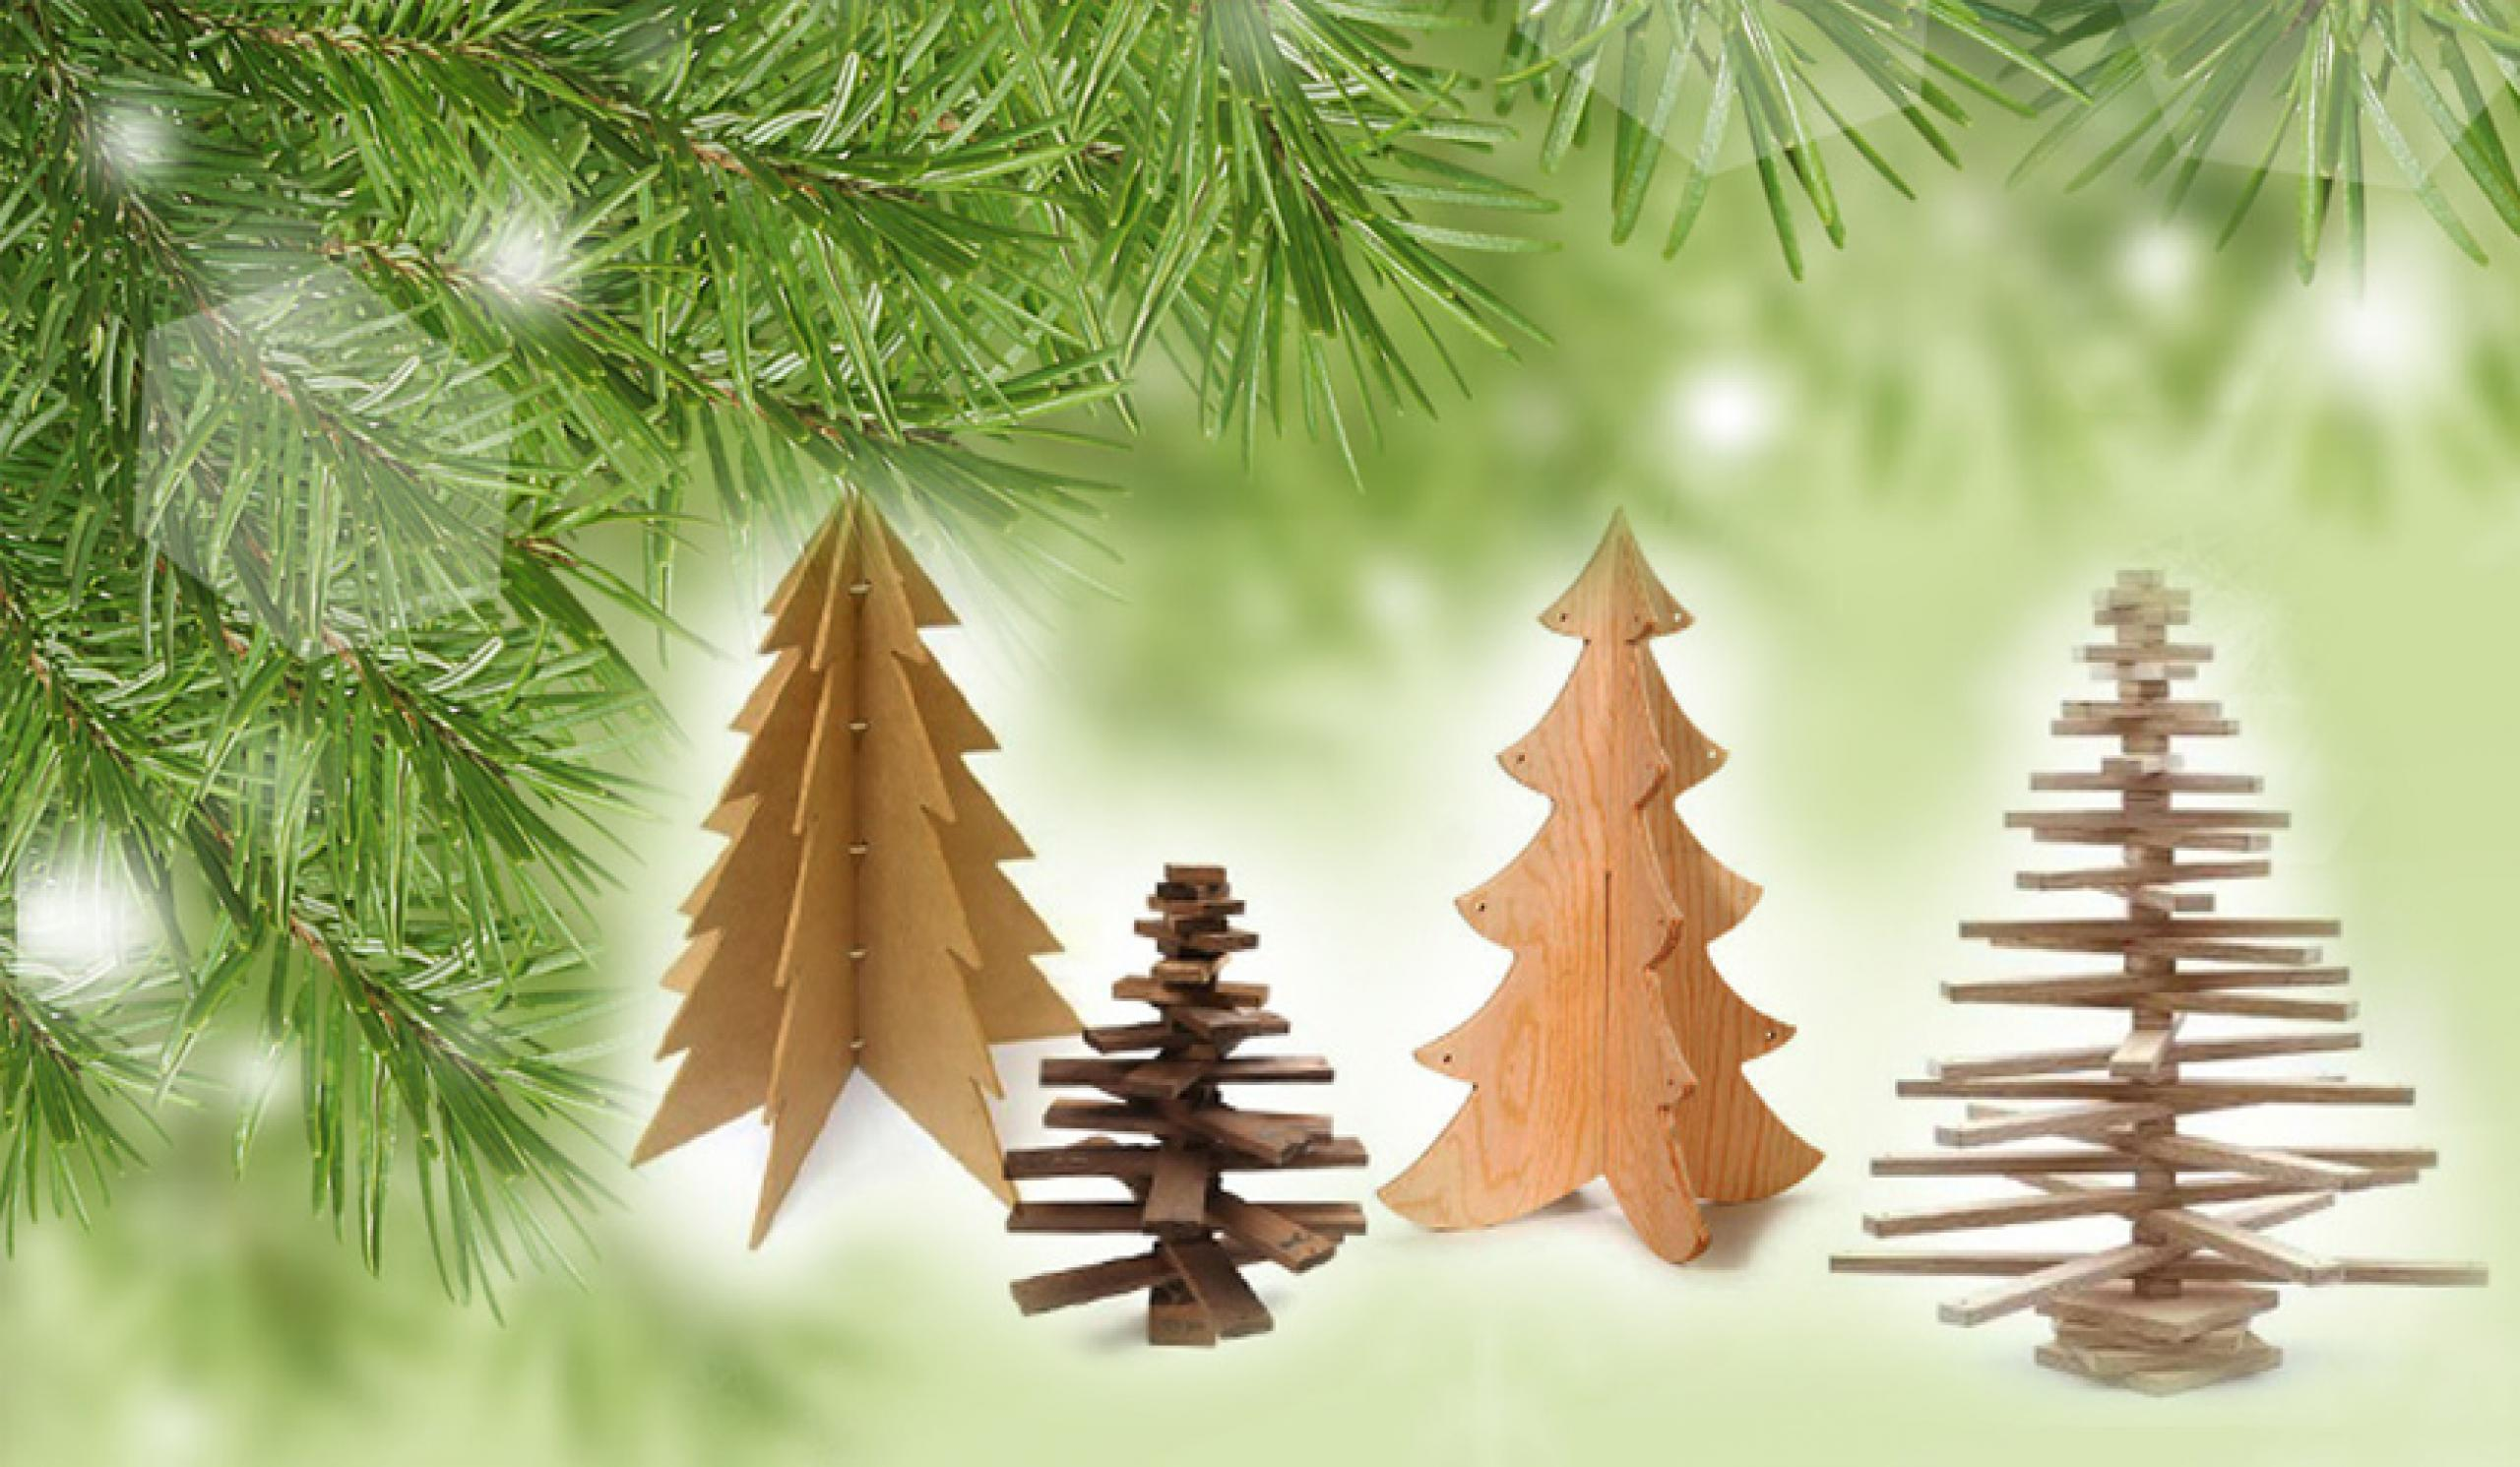 How to make a wooden Christmas tree